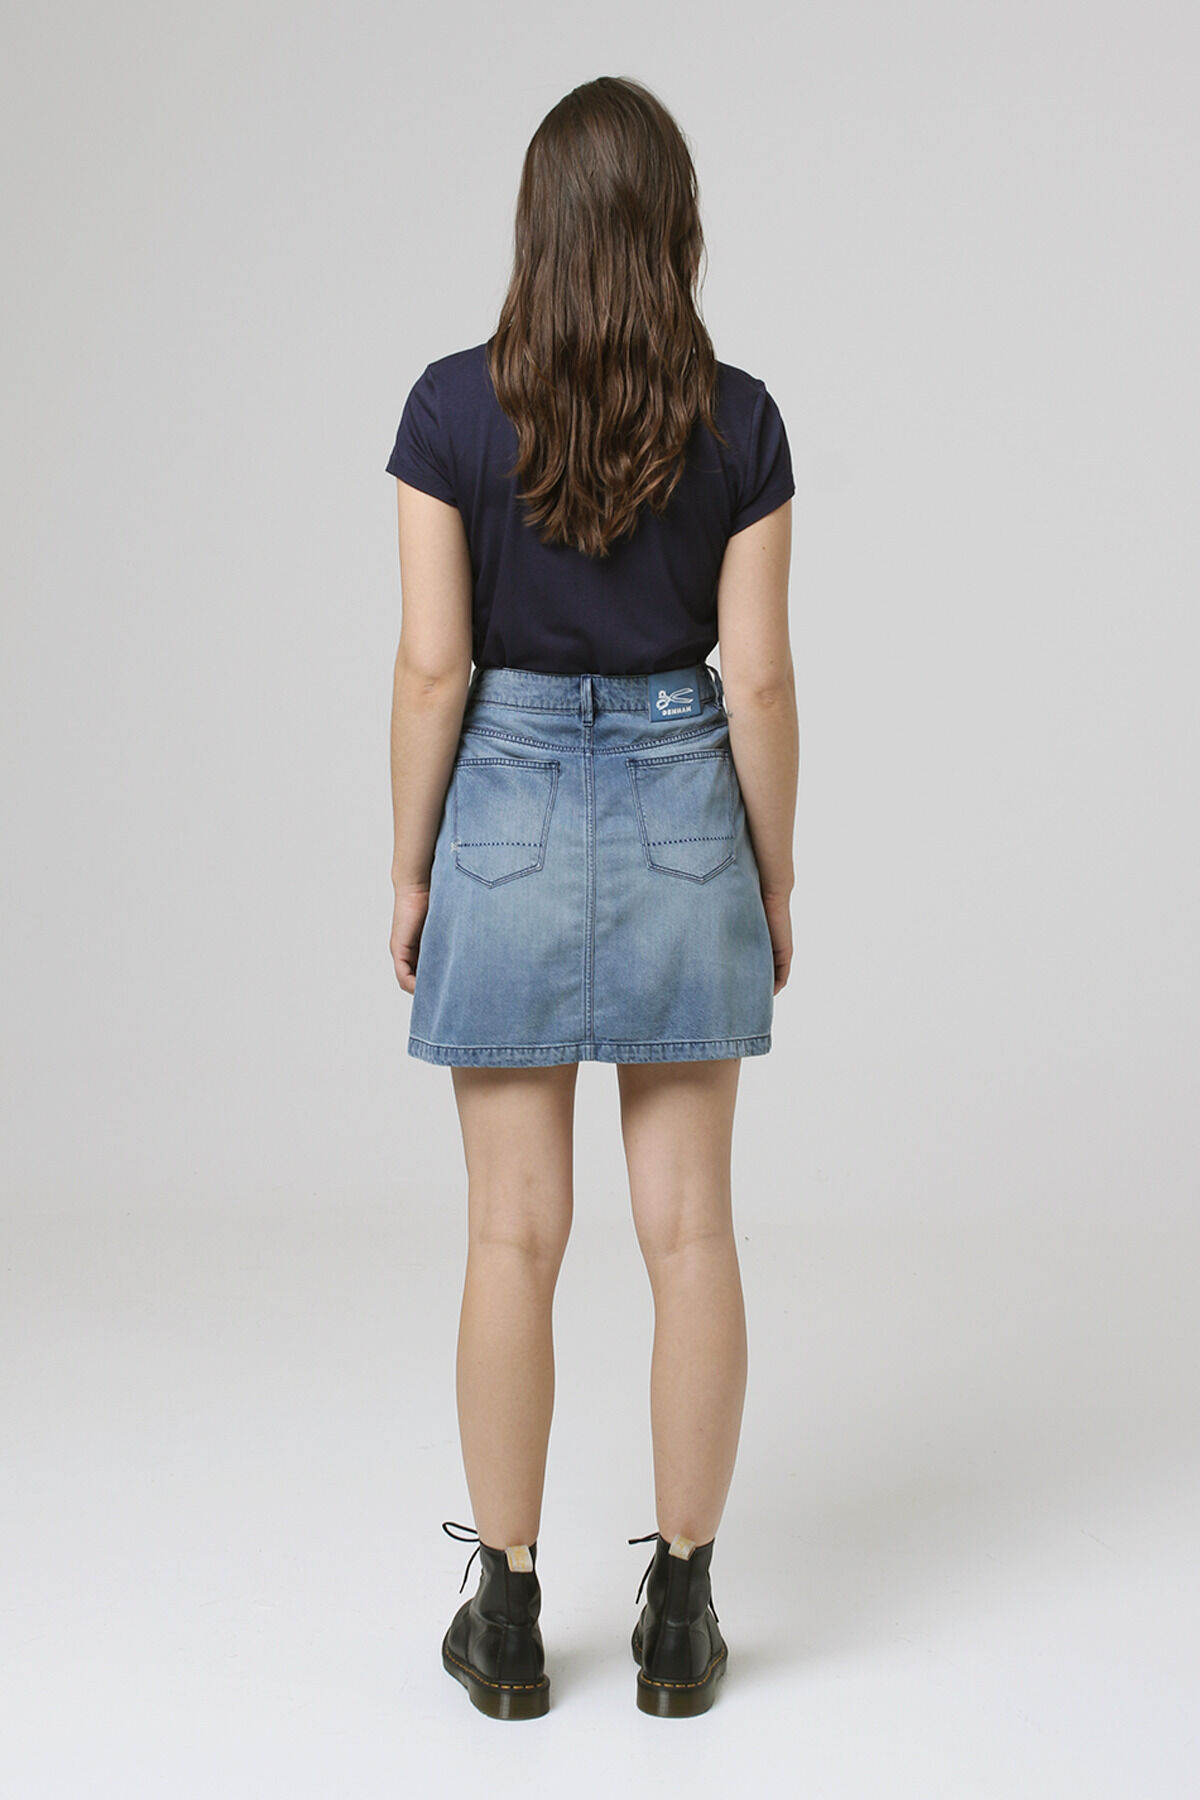 SAND SKIRT Tencel-Denim Blend - Mini